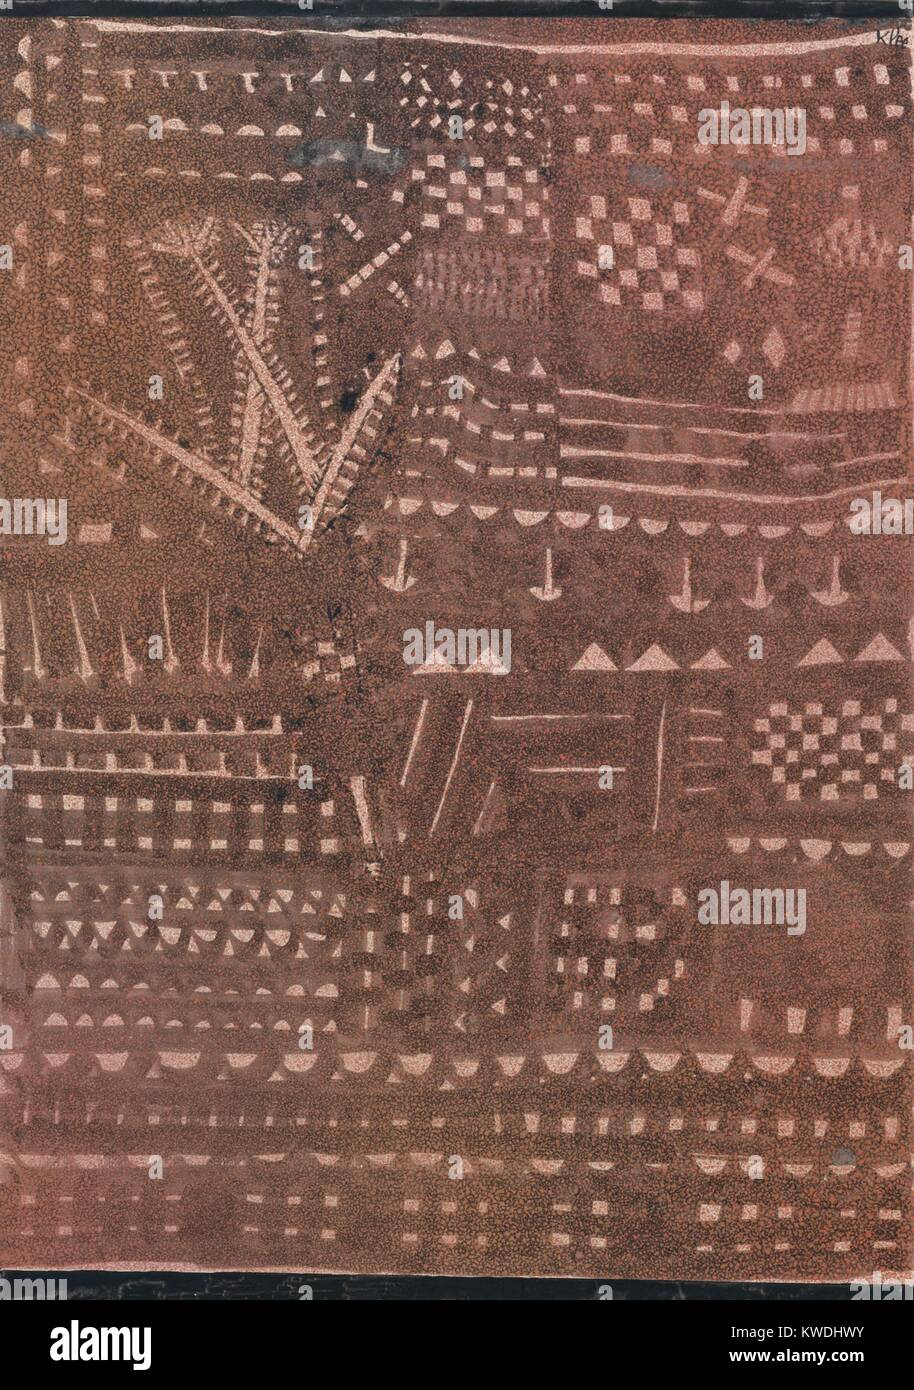 IN THE MANNER OF LEATHER TAPESTRY, by Paul Klee, 1925, Swiss drawing, ink and tempera on paper. Painting splattered - Stock Image